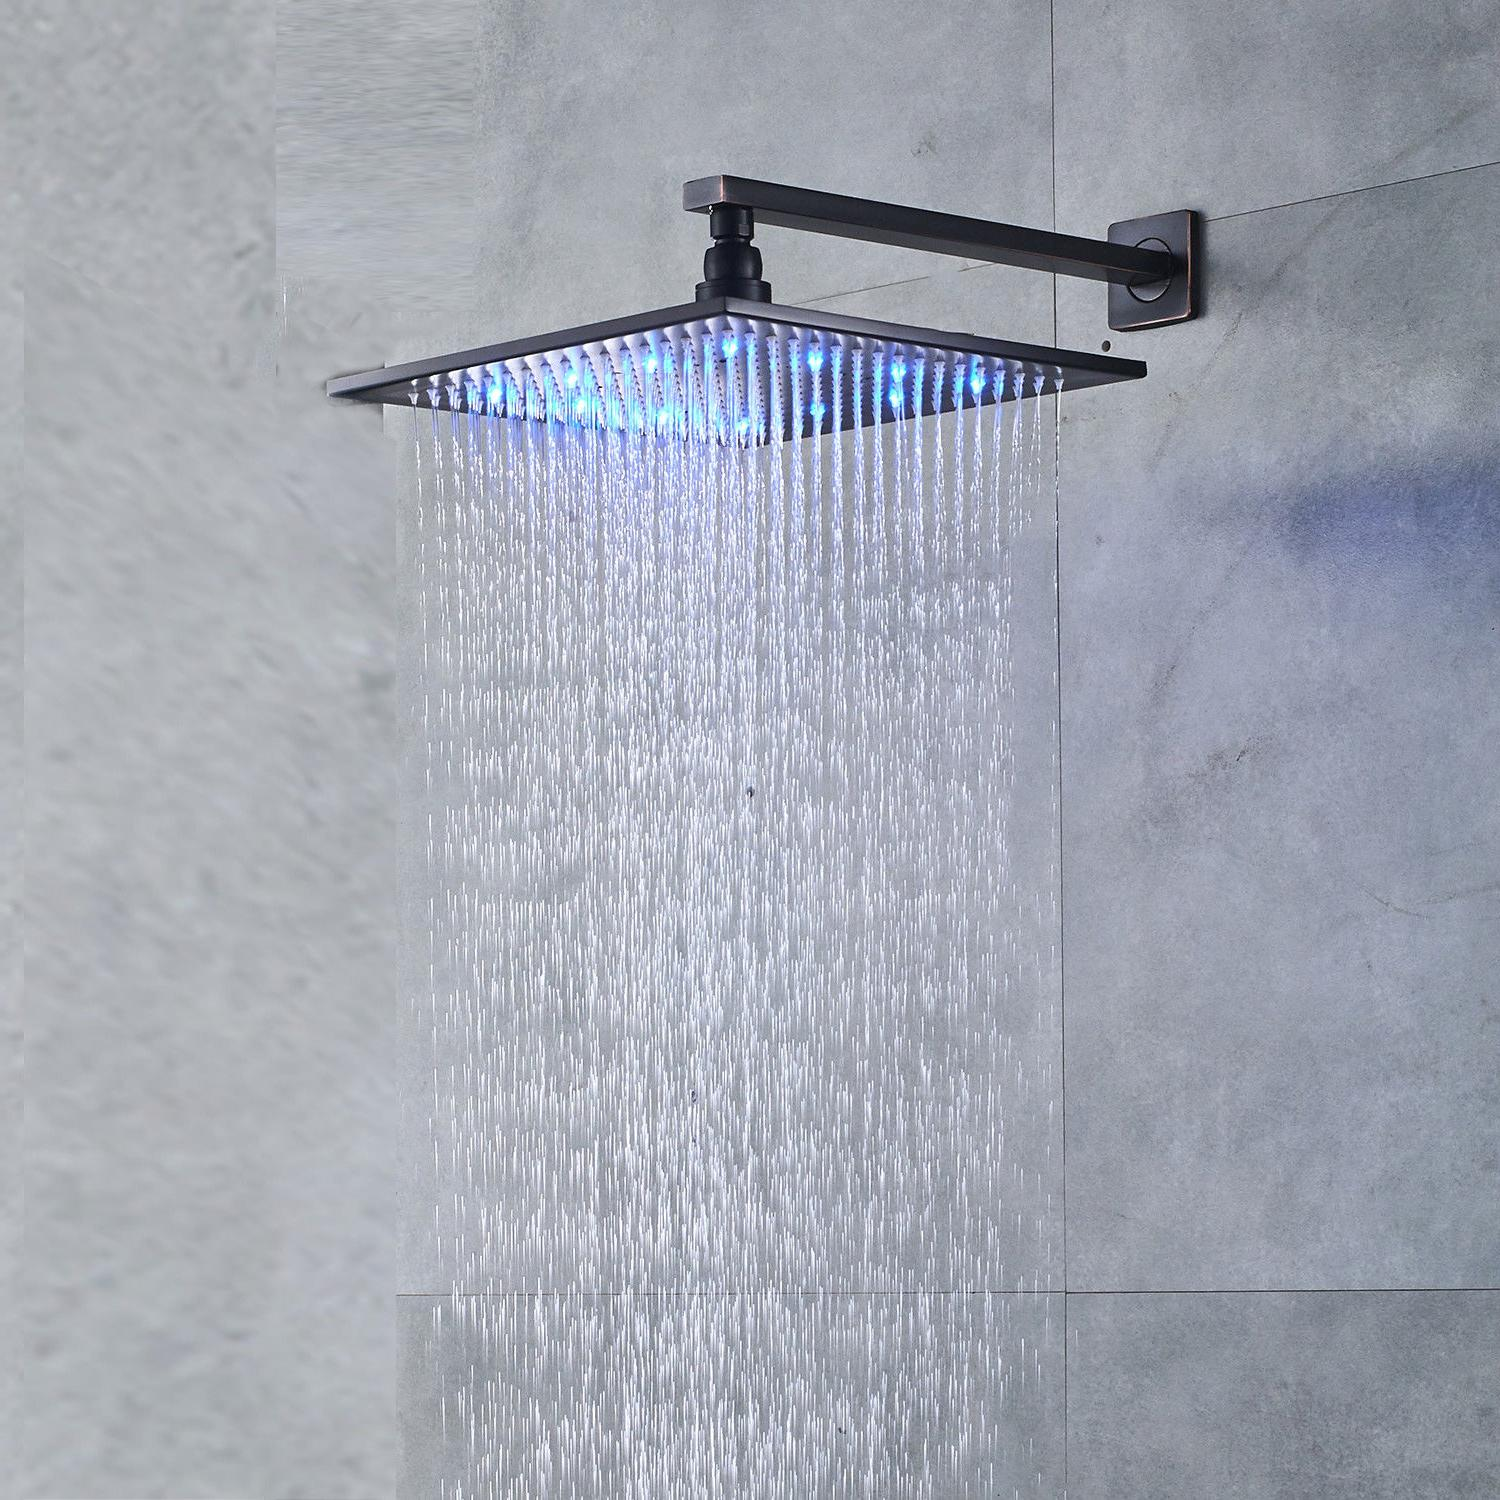 LED Mounted Shower Faucet Hand